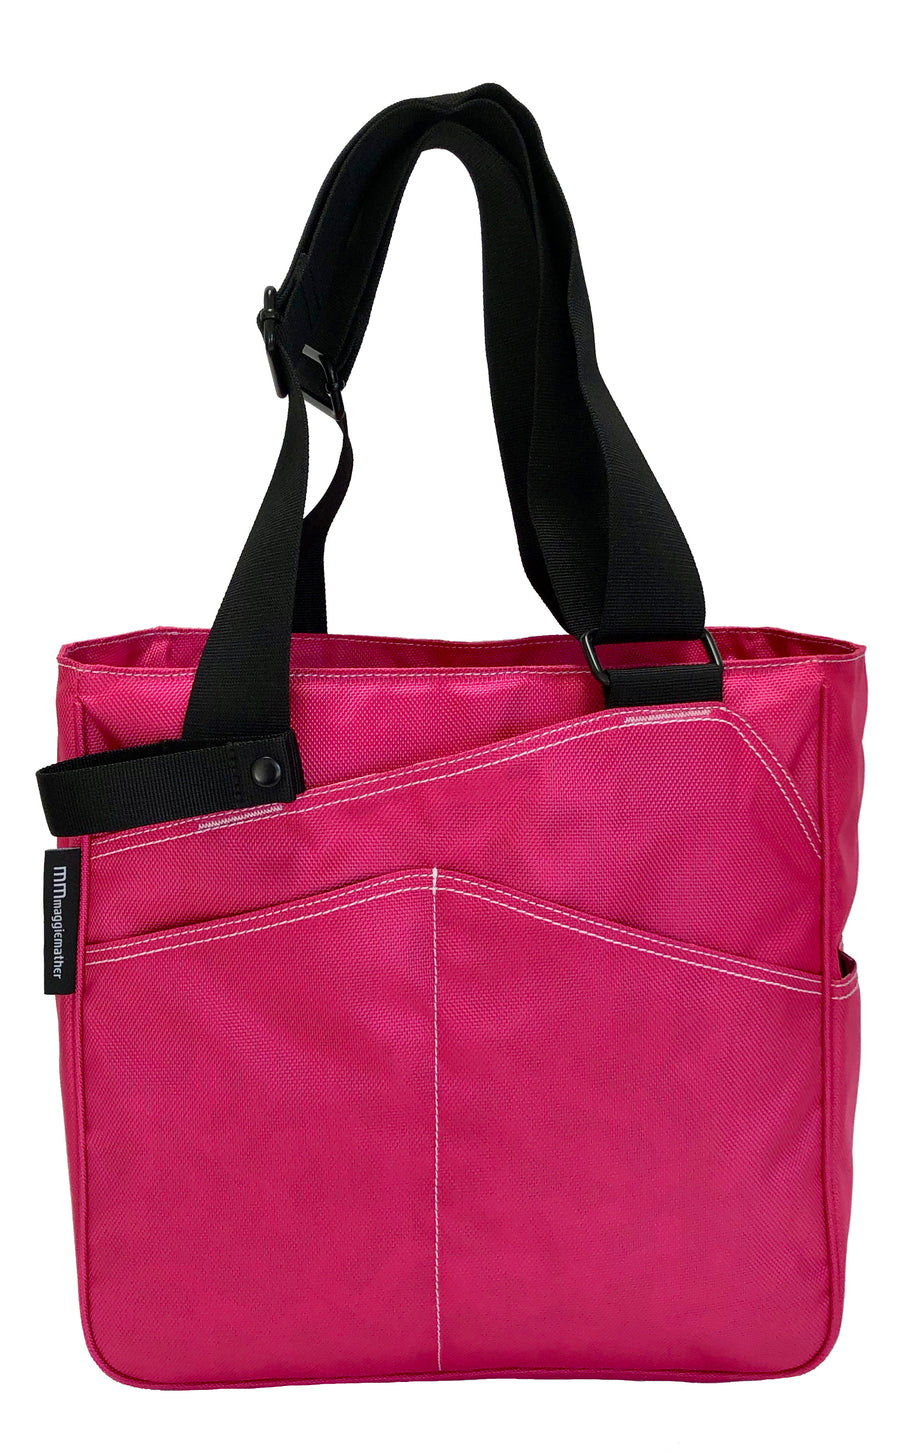 Mini T-Tote in Fuchsia